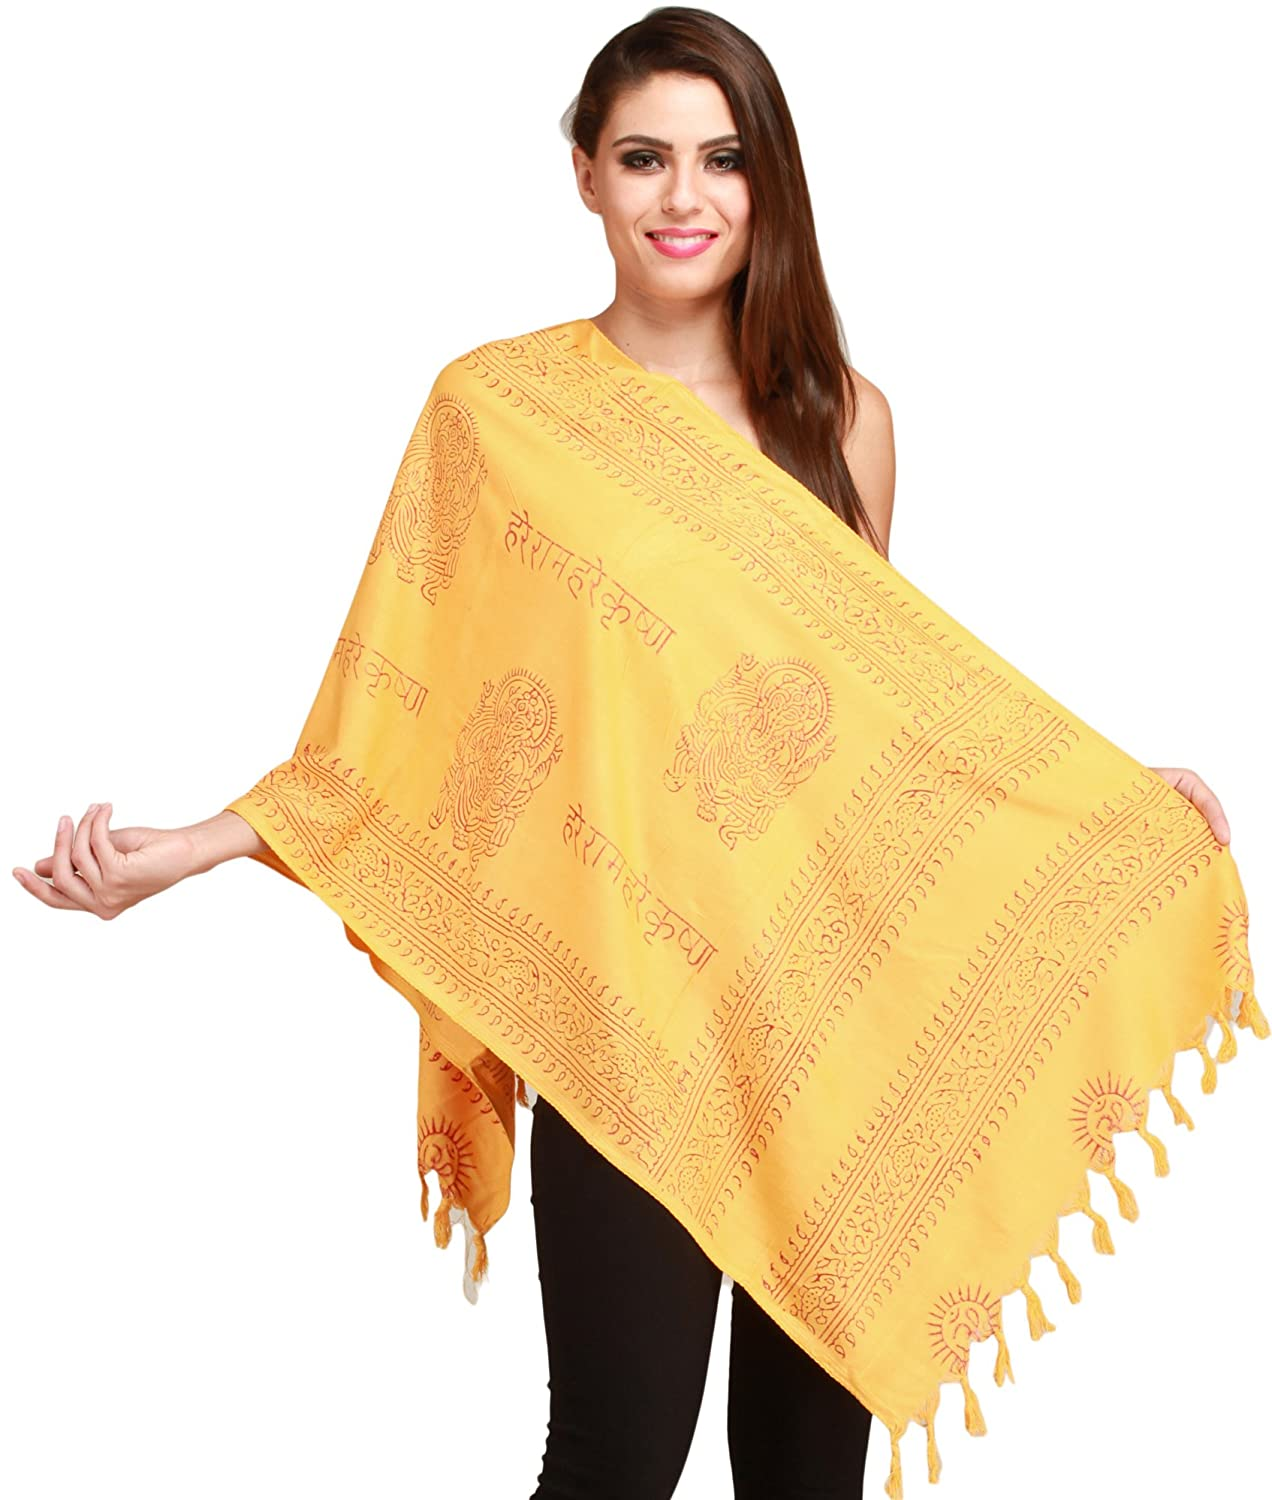 Exotic India Pale-Marigold Sanatana Dharma Prayer Scarf of Lord Ganesha - Yellow SRB70